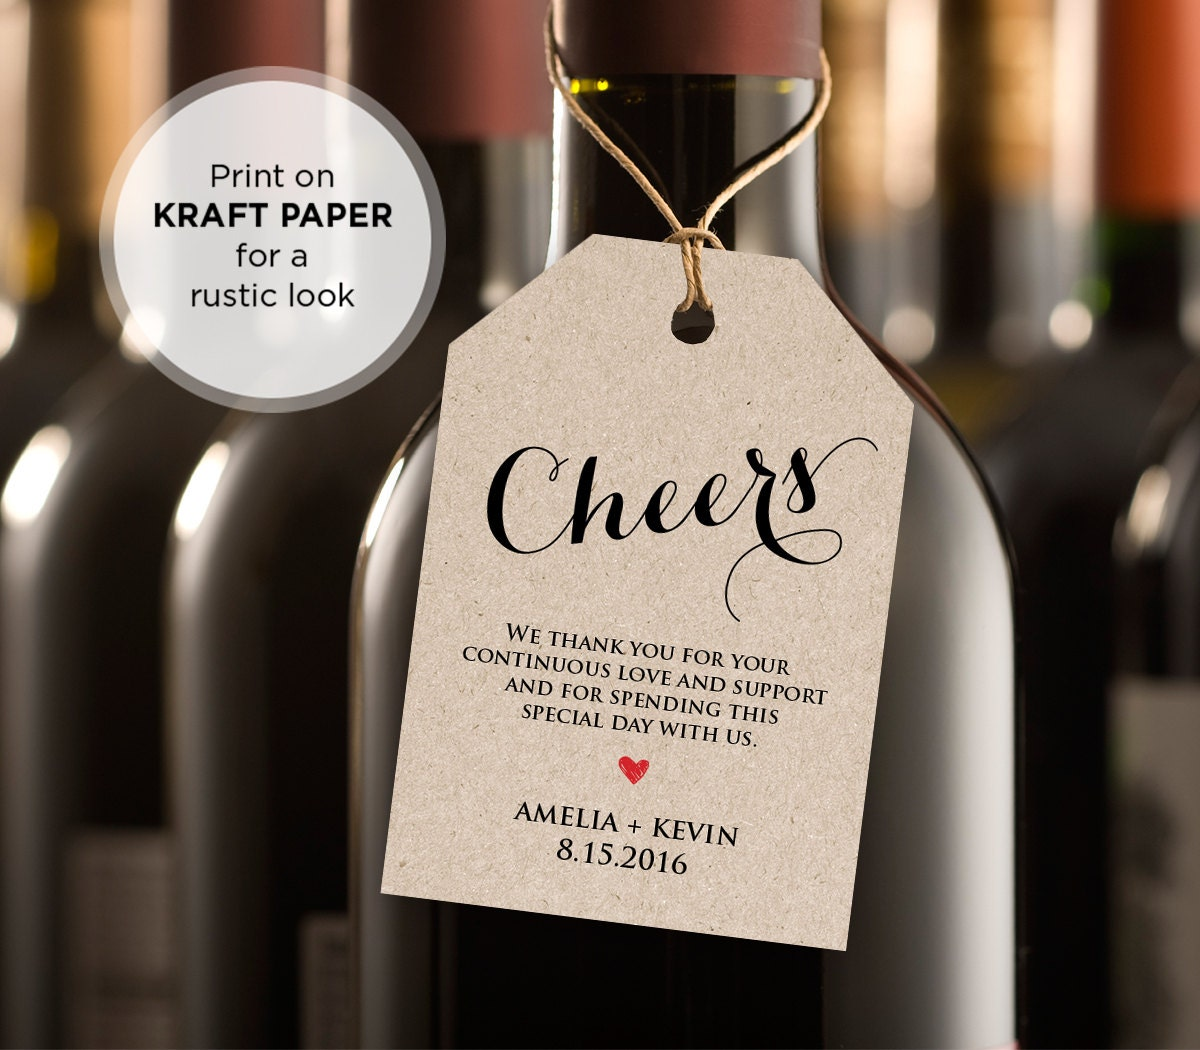 cheers wine tag wedding favor tag wedding table wine diy printable tag instant download